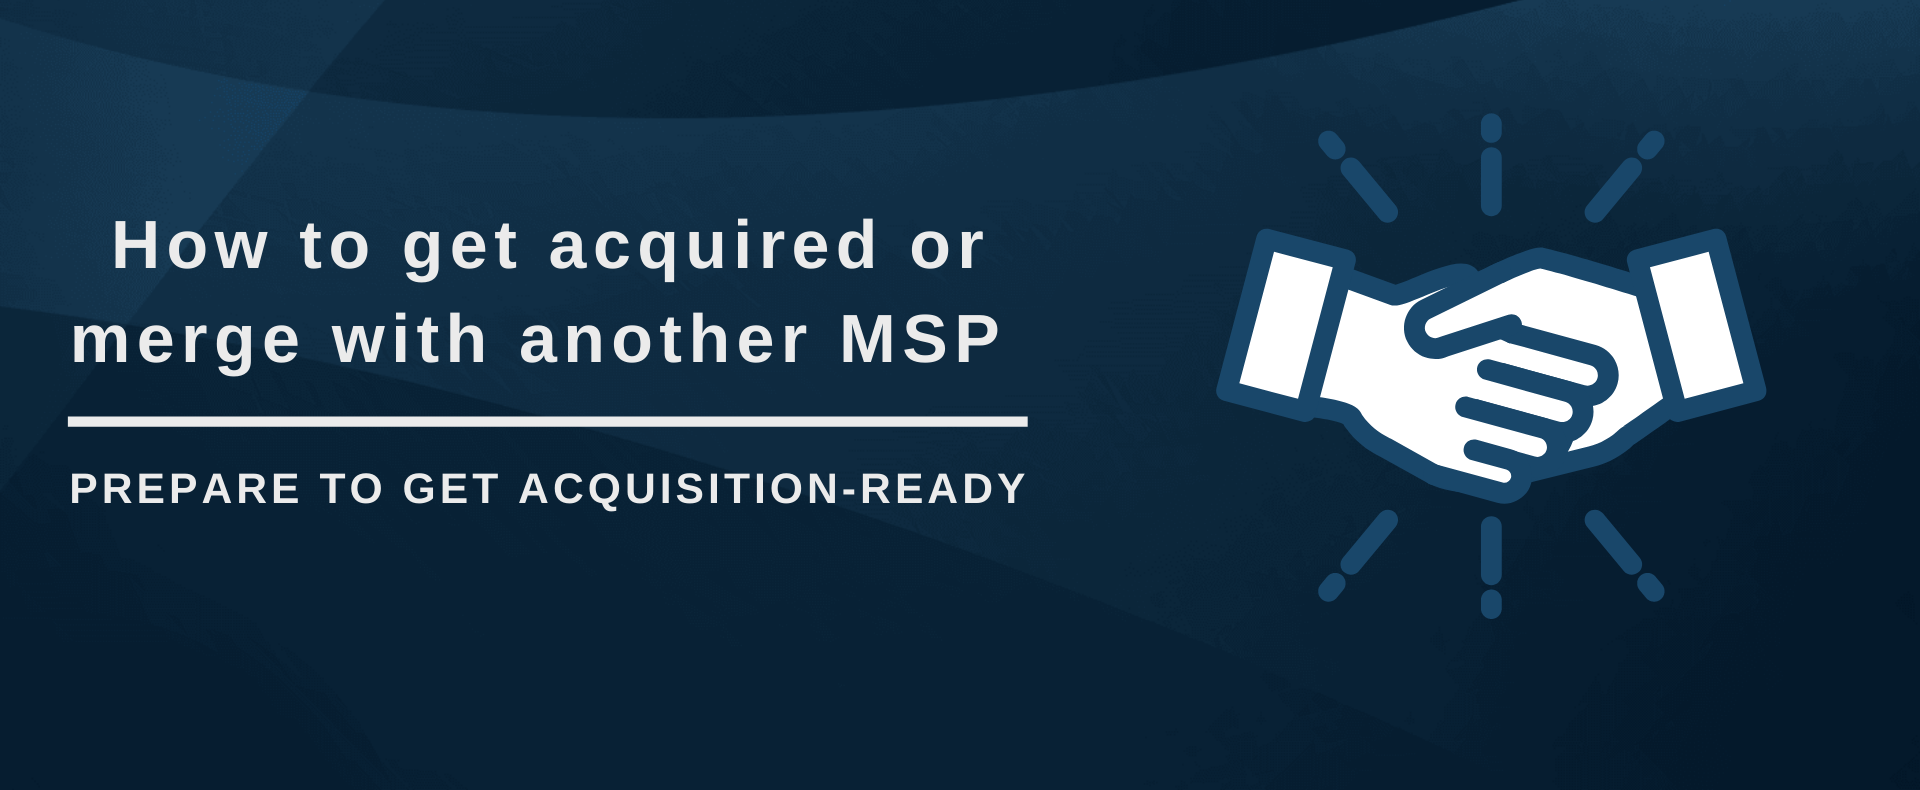 How to get acquired or merge with another MSP